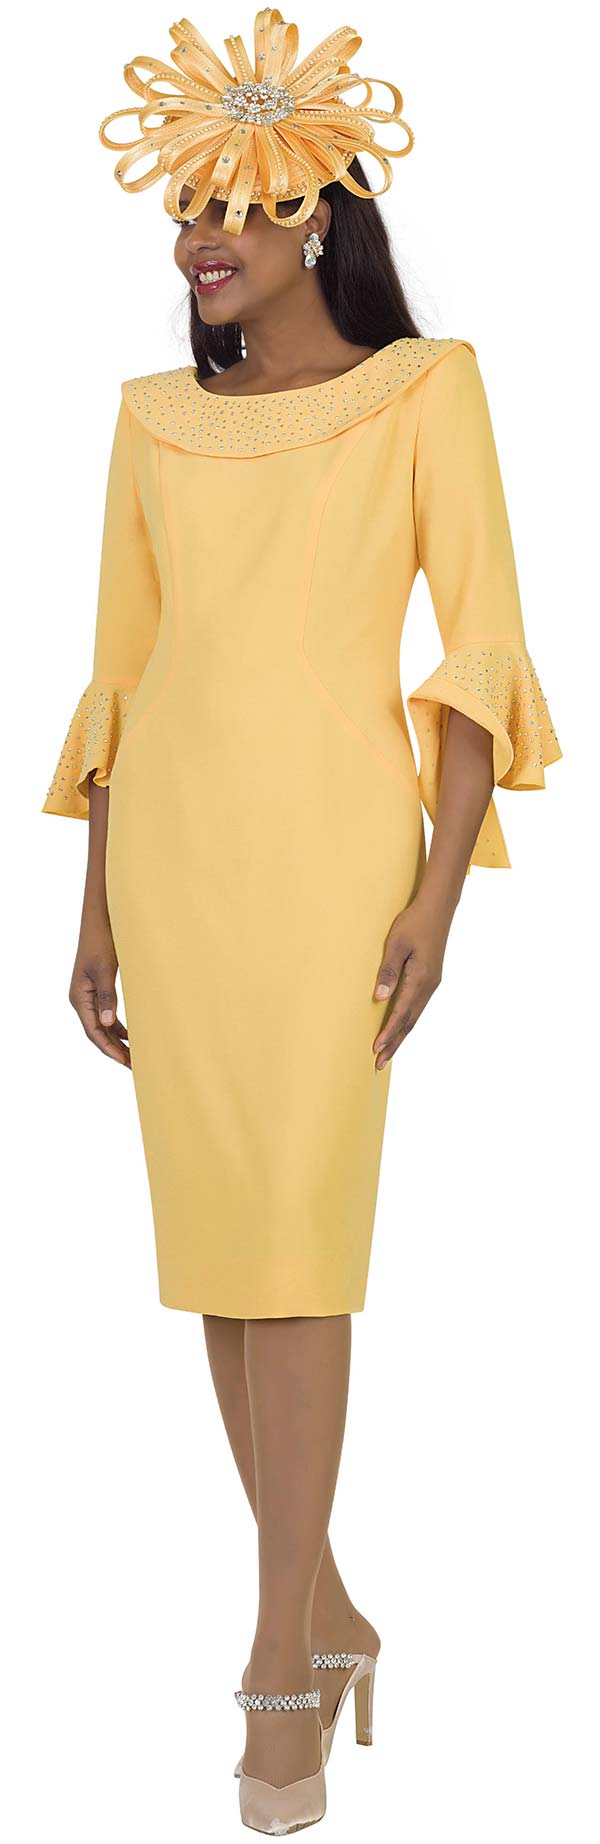 Lily and Taylor 4524-Yellow -  Womens Church Dress With Rhinestone Embellished Portrait Collar And Flounce Cuff Sleeves